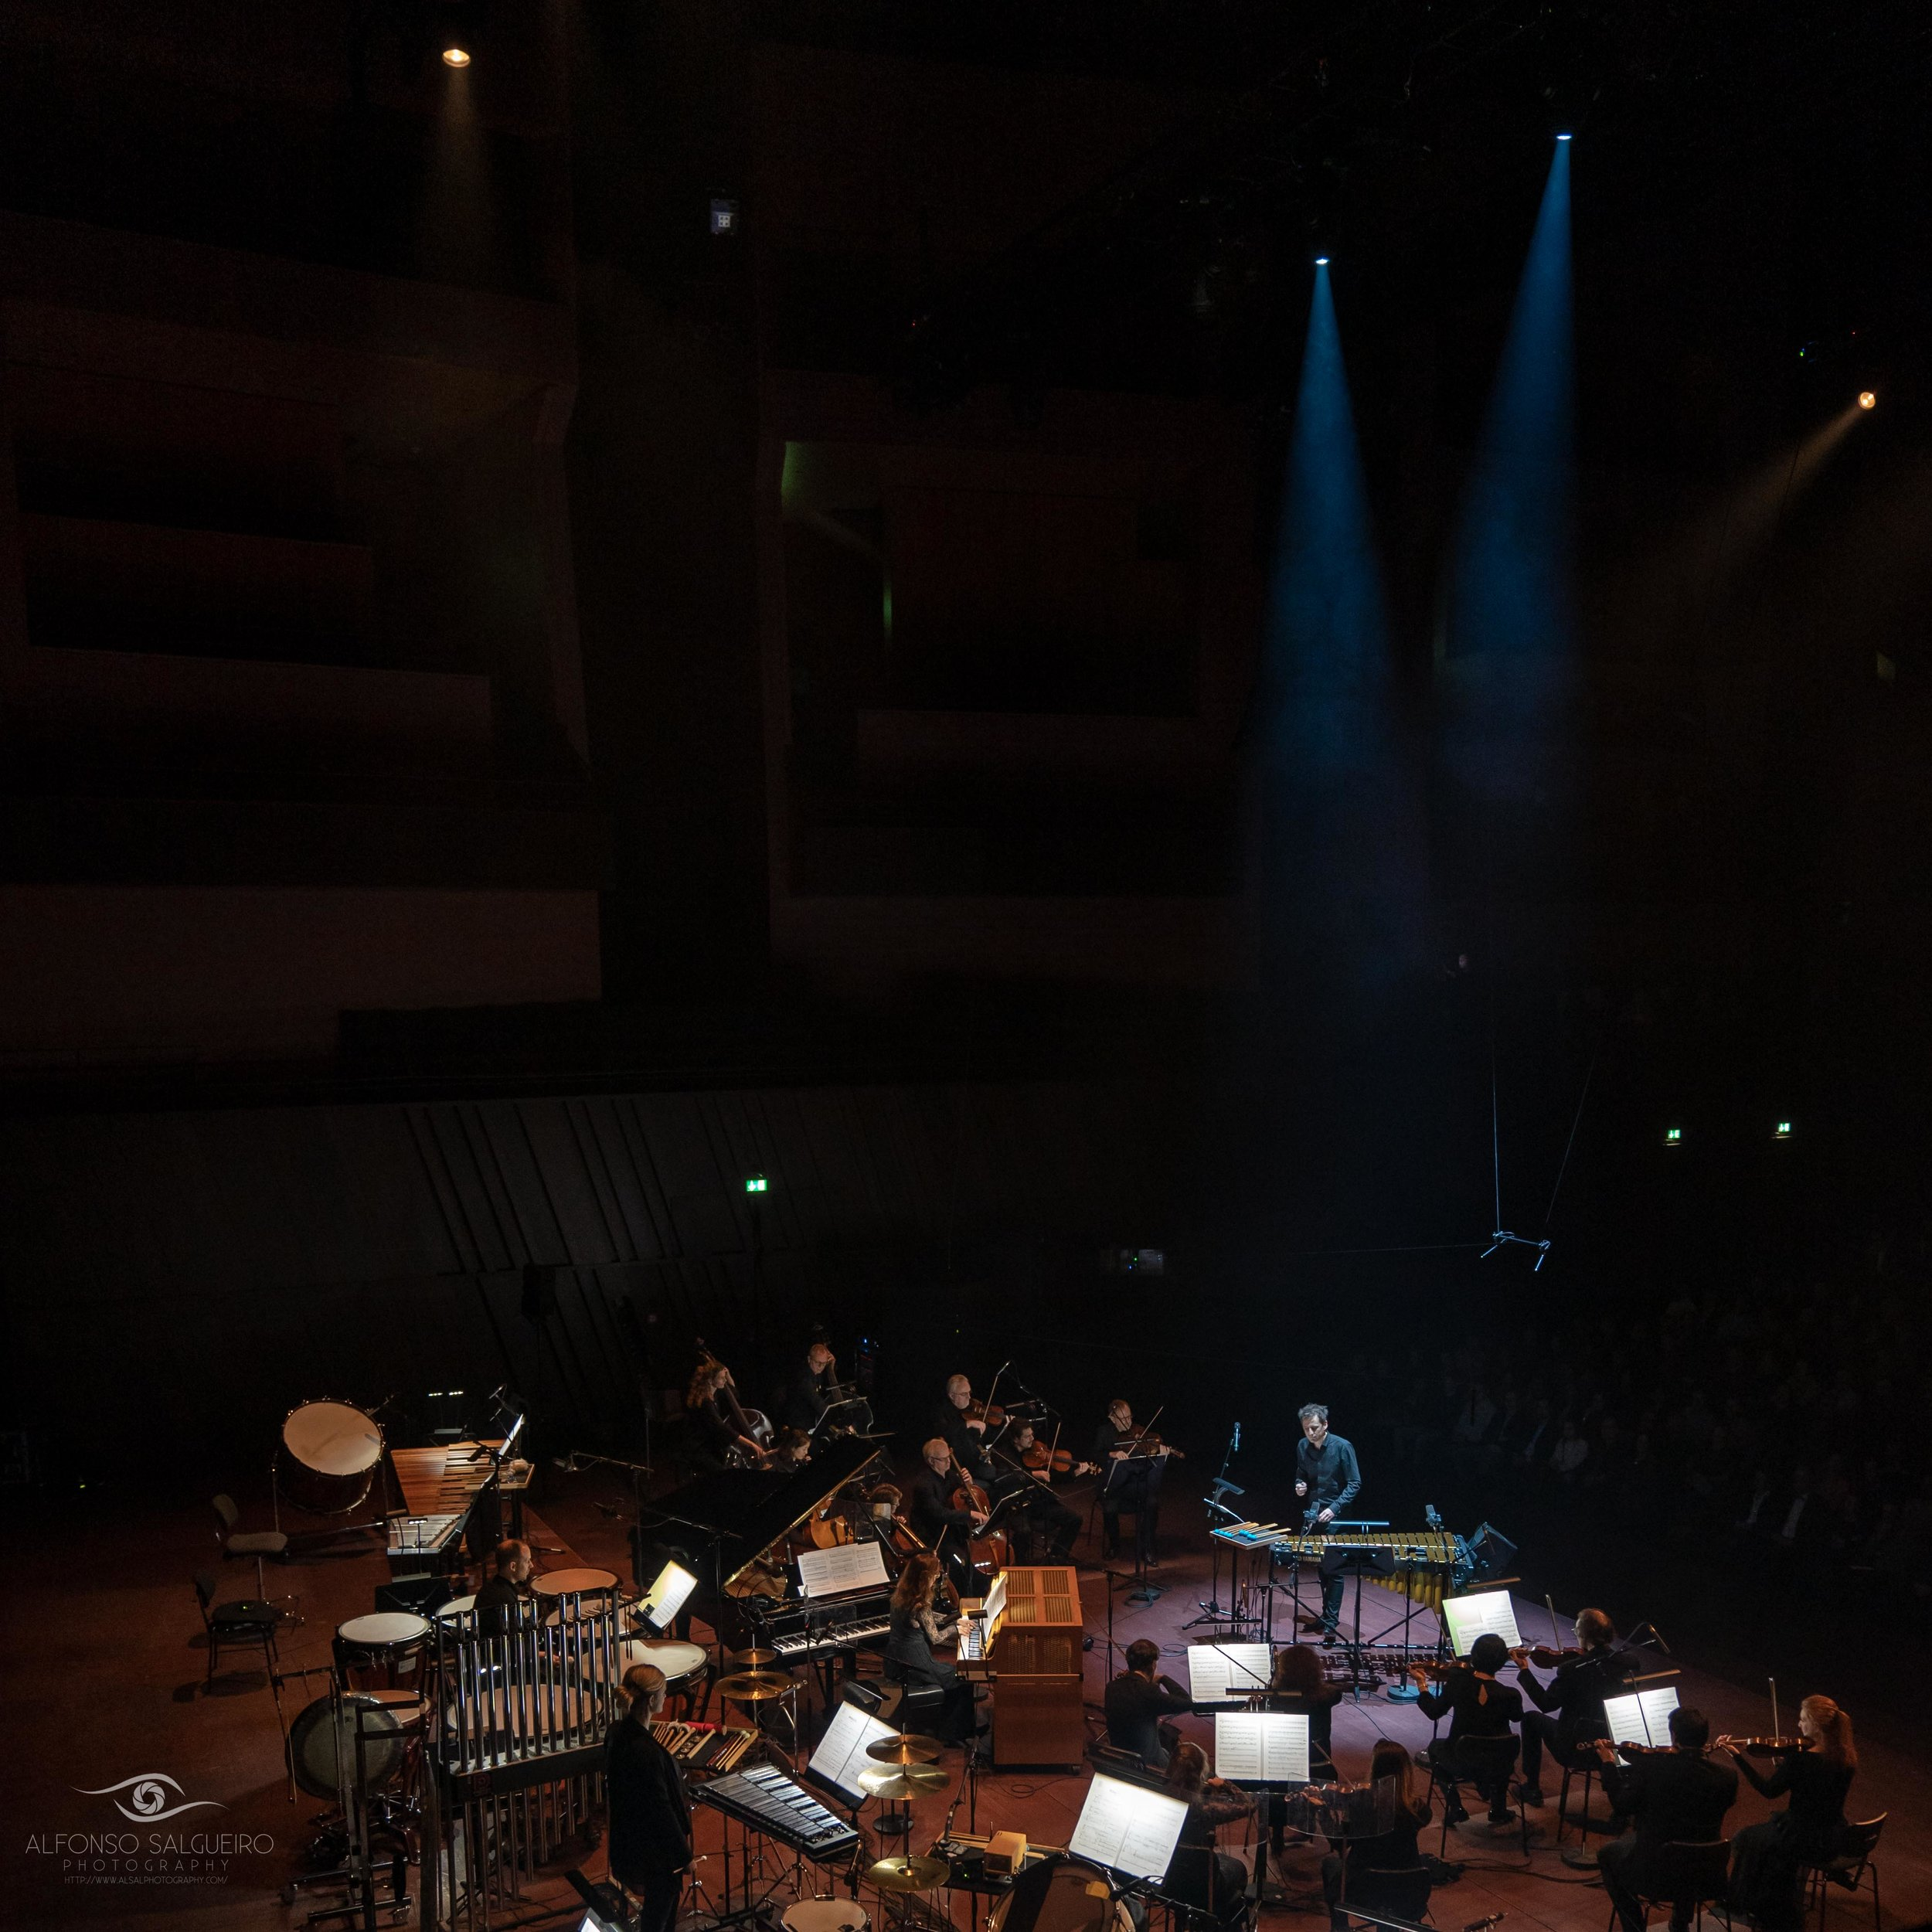 Philharmonie 18-19 season in images_-30.jpg